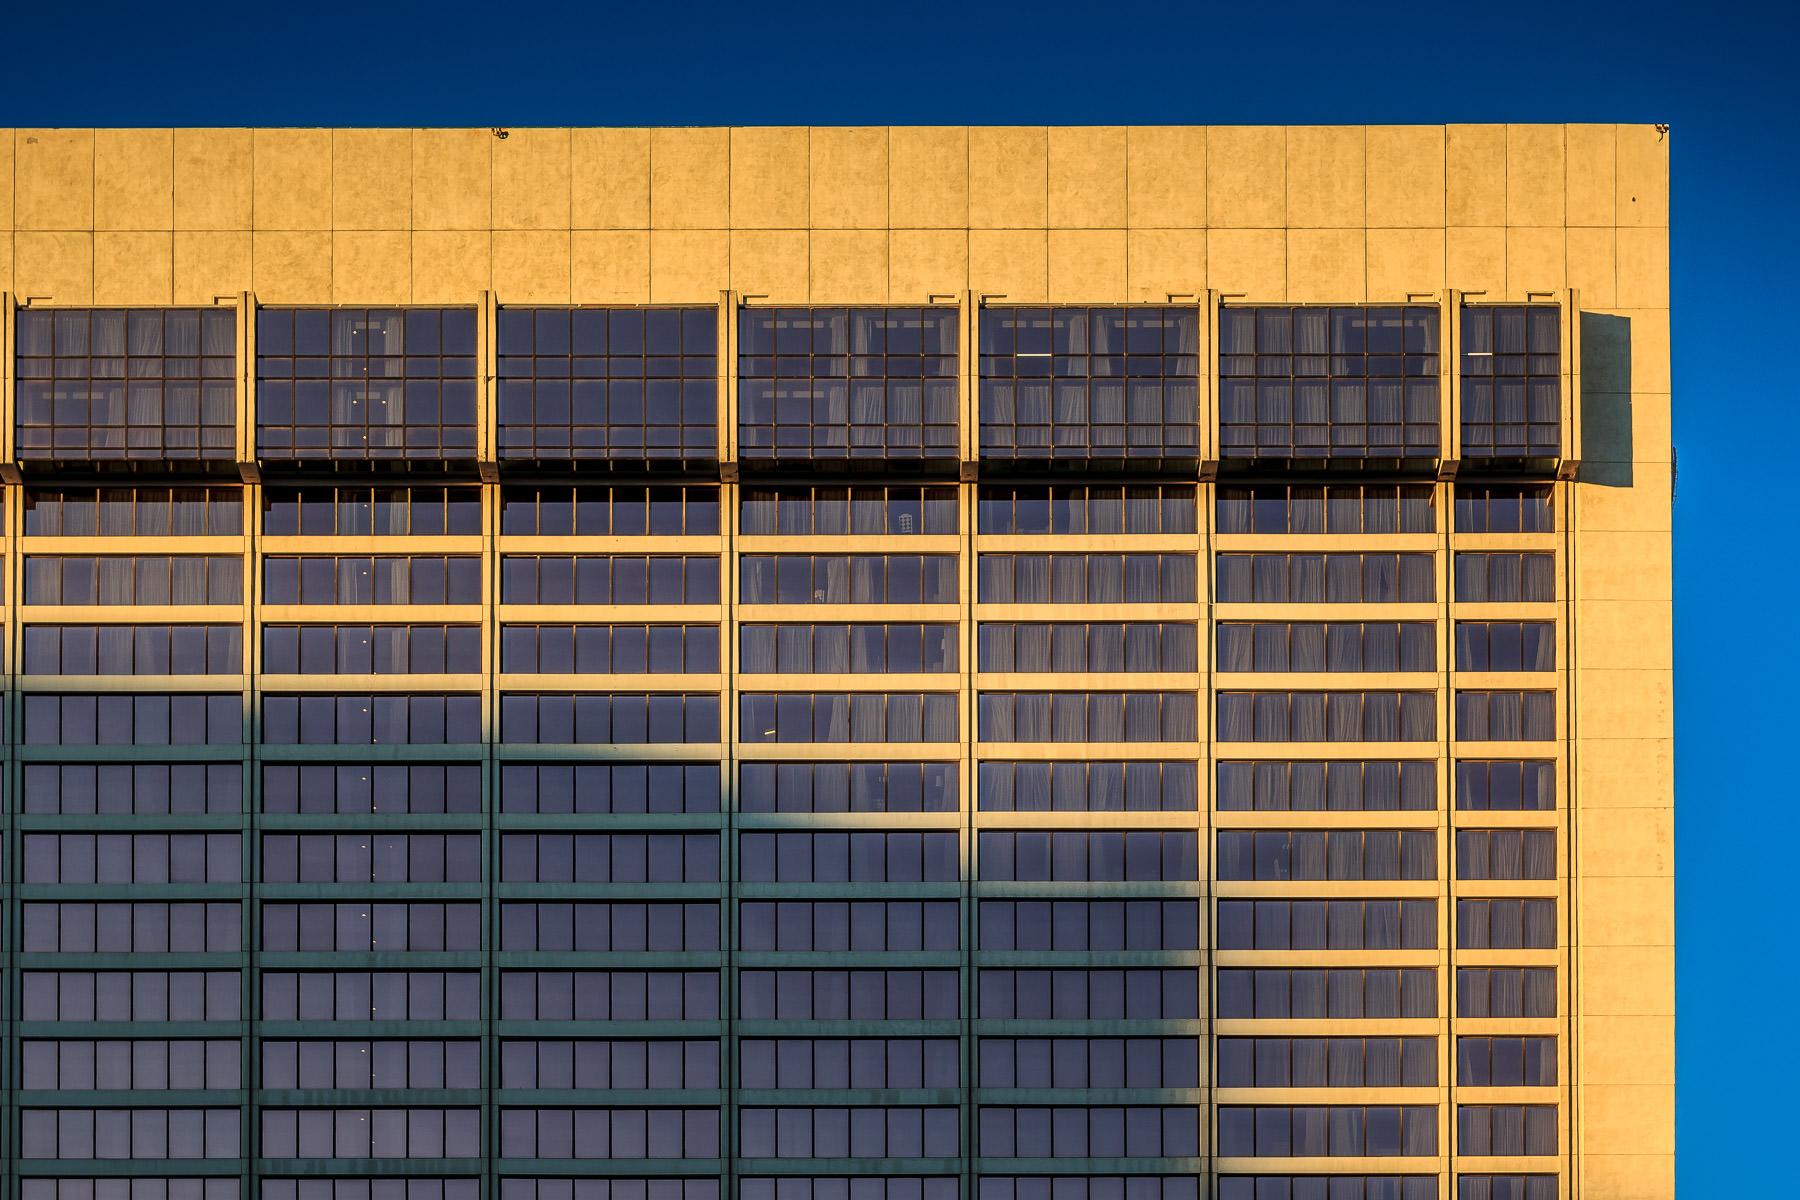 One of the Flamingo Las Vegas' hotel towers rises into the blue Nevada sky. The Flamingo was the third casino/hotel to open on The Strip and is the oldest resort on The Strip still in operation.